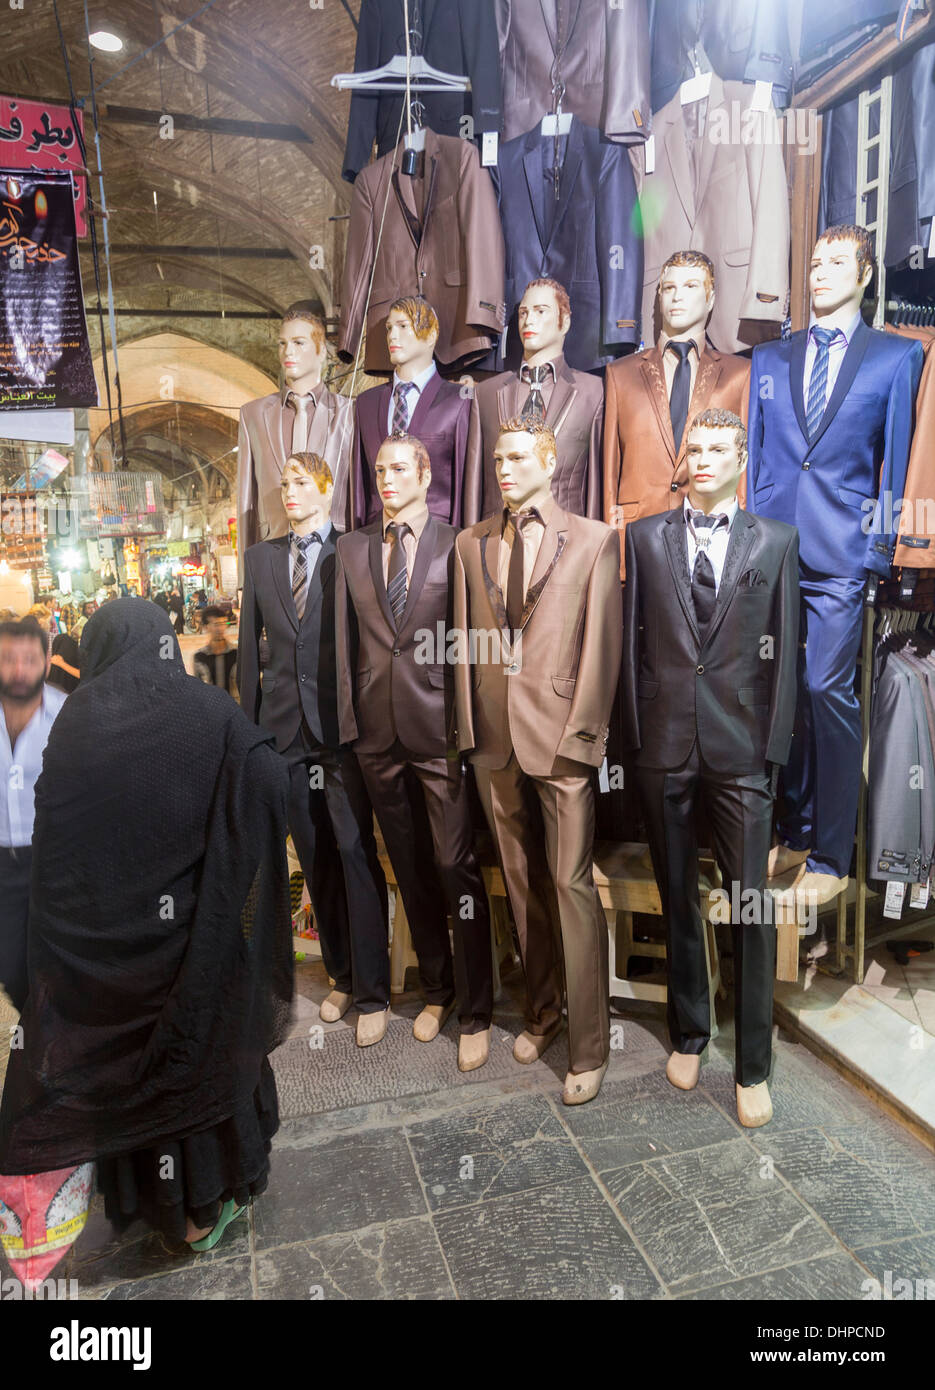 men's suits on sale in main bazar, Isfahan, Iran - Stock Image